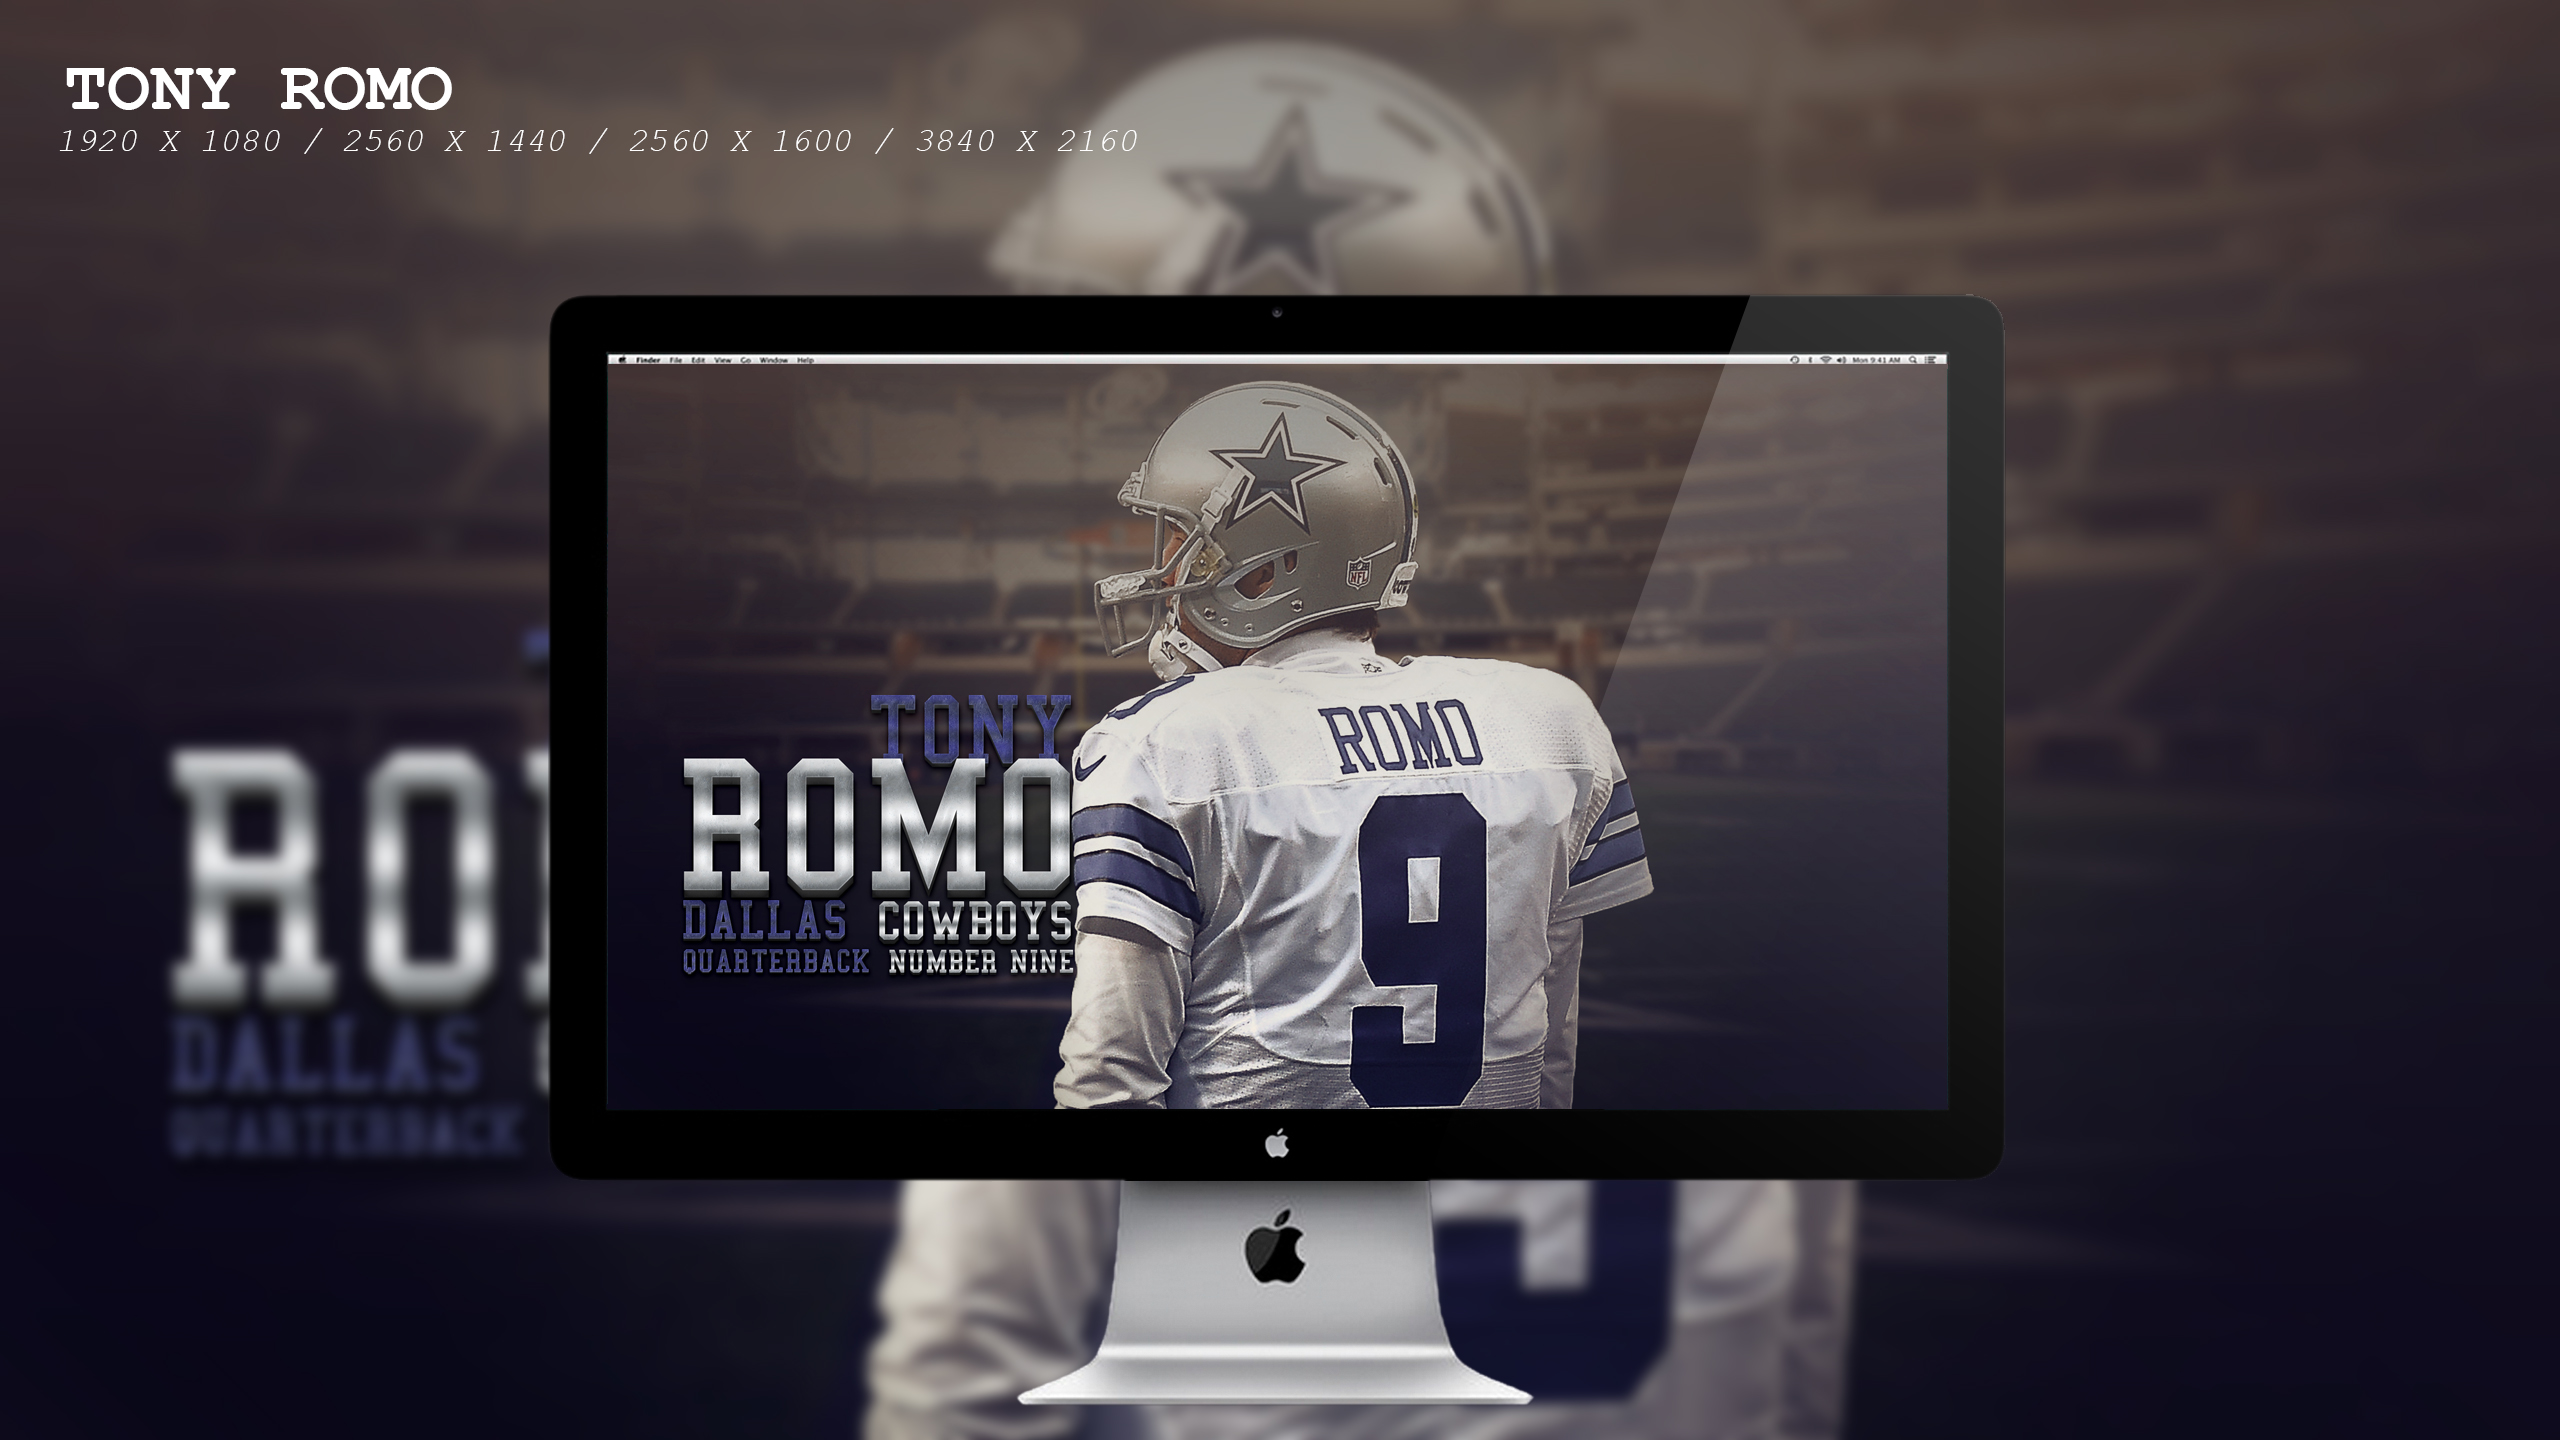 Tony Romo Wallpaper HD by BeAware8 on